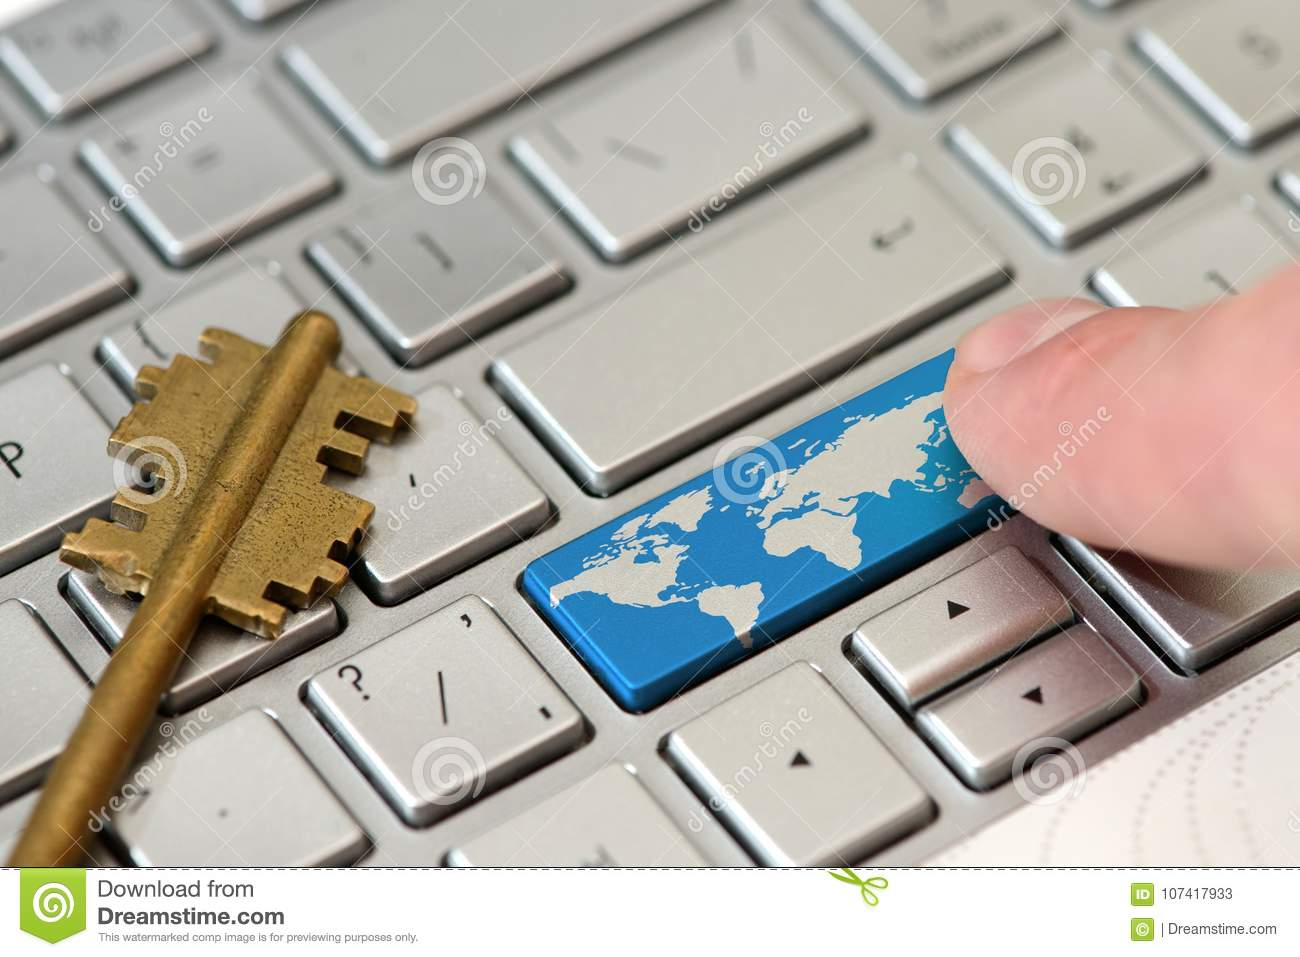 A finger press a button with world map on a keyboard stock image download a finger press a button with world map on a keyboard stock image image gumiabroncs Gallery